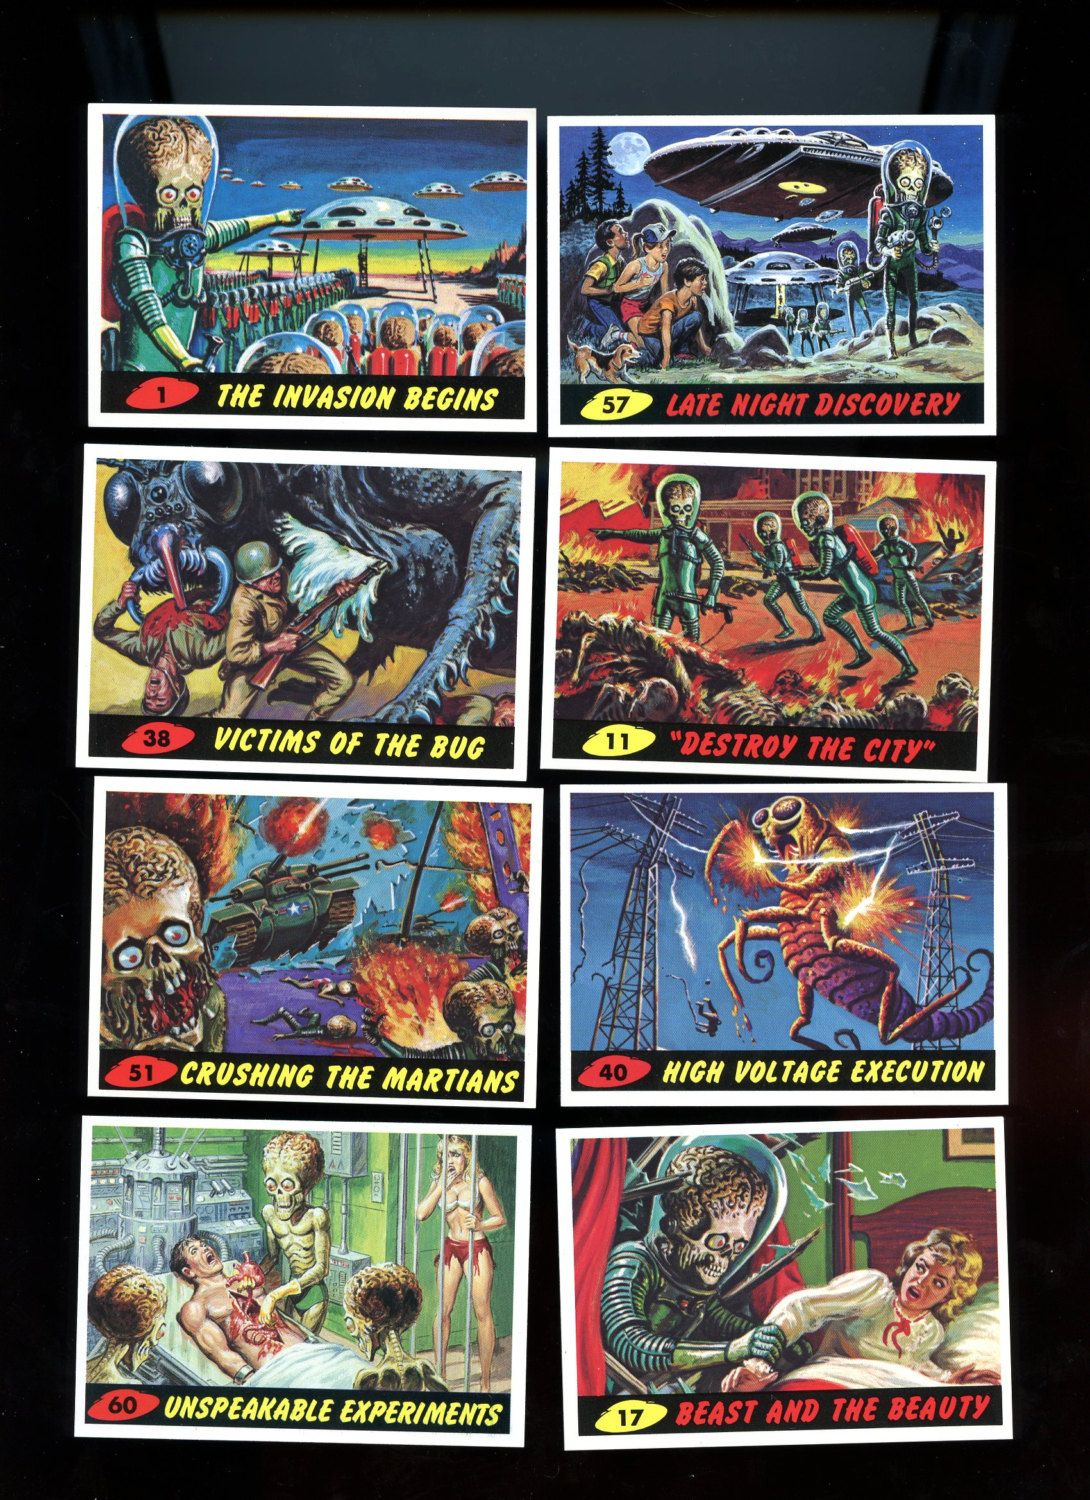 Mars attacks topps 1994 vintage card lot of 8 cards